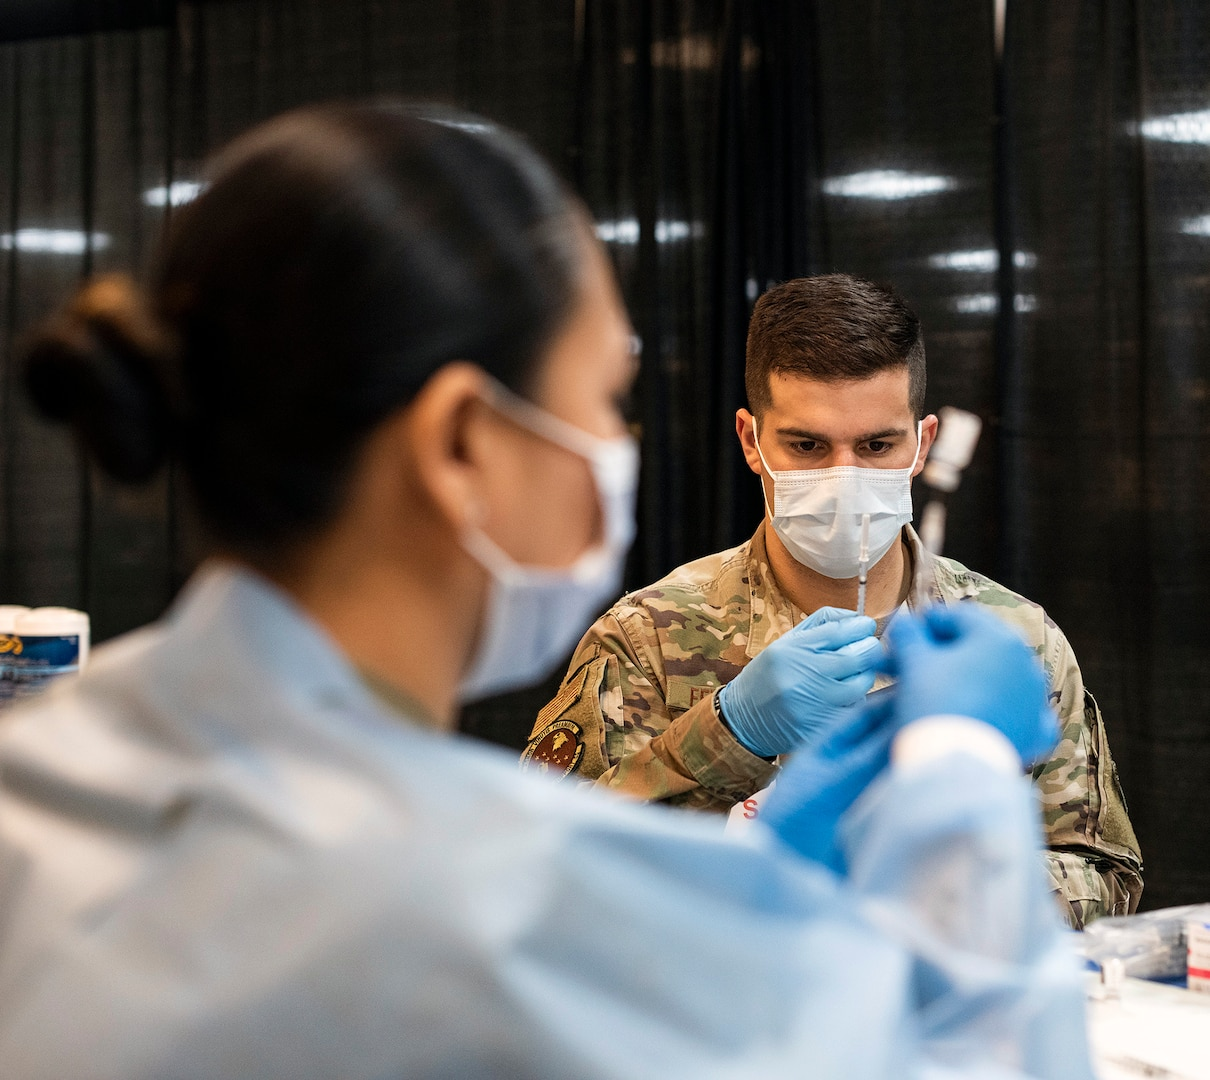 Air Force officer prepares COVID-19 vaccine.